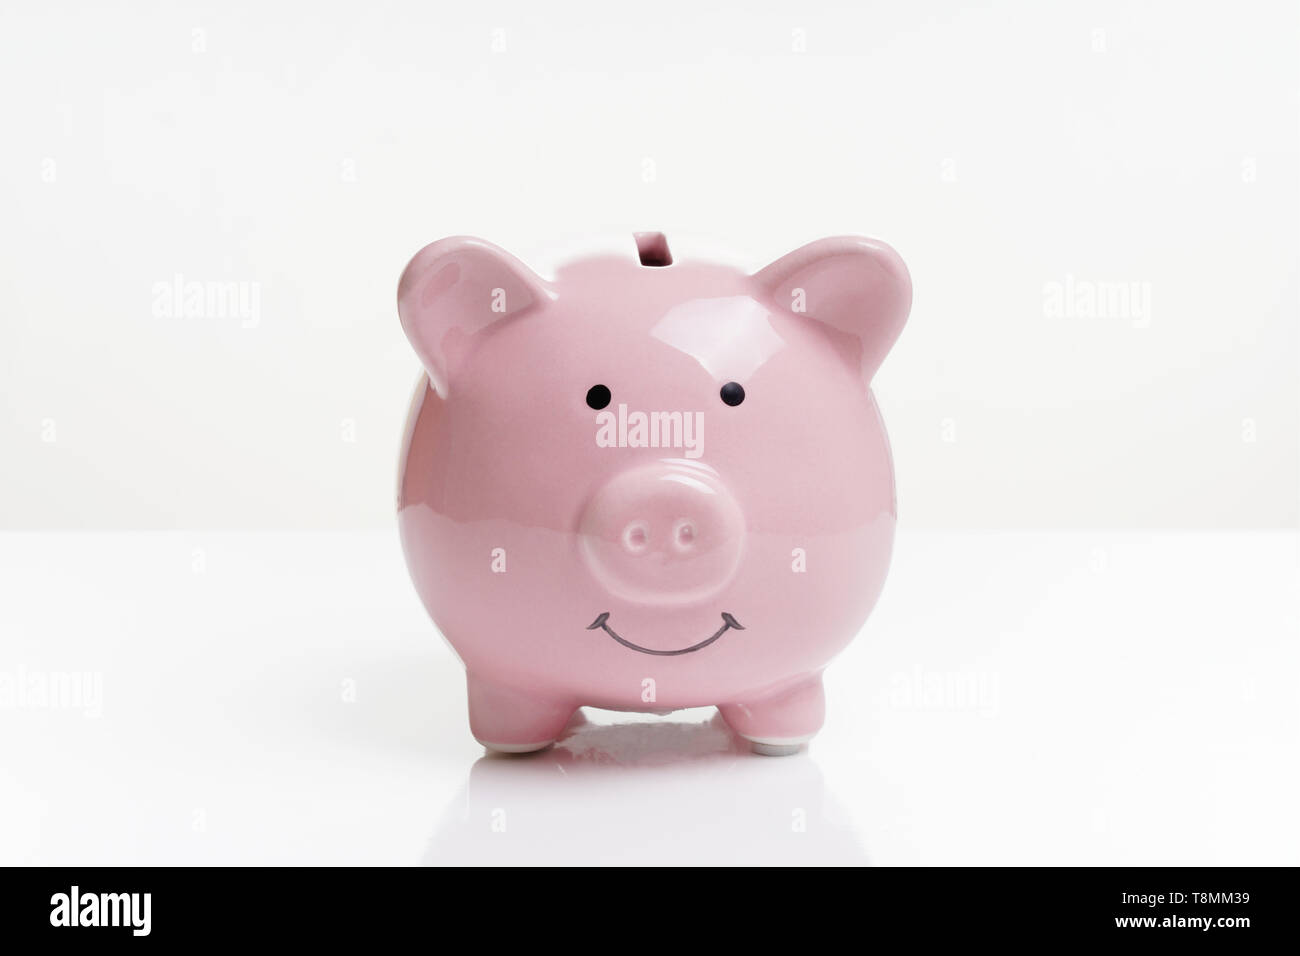 piggy or coin bank or piggybank or money box - finance and savings concept on white background with reflection - Stock Image